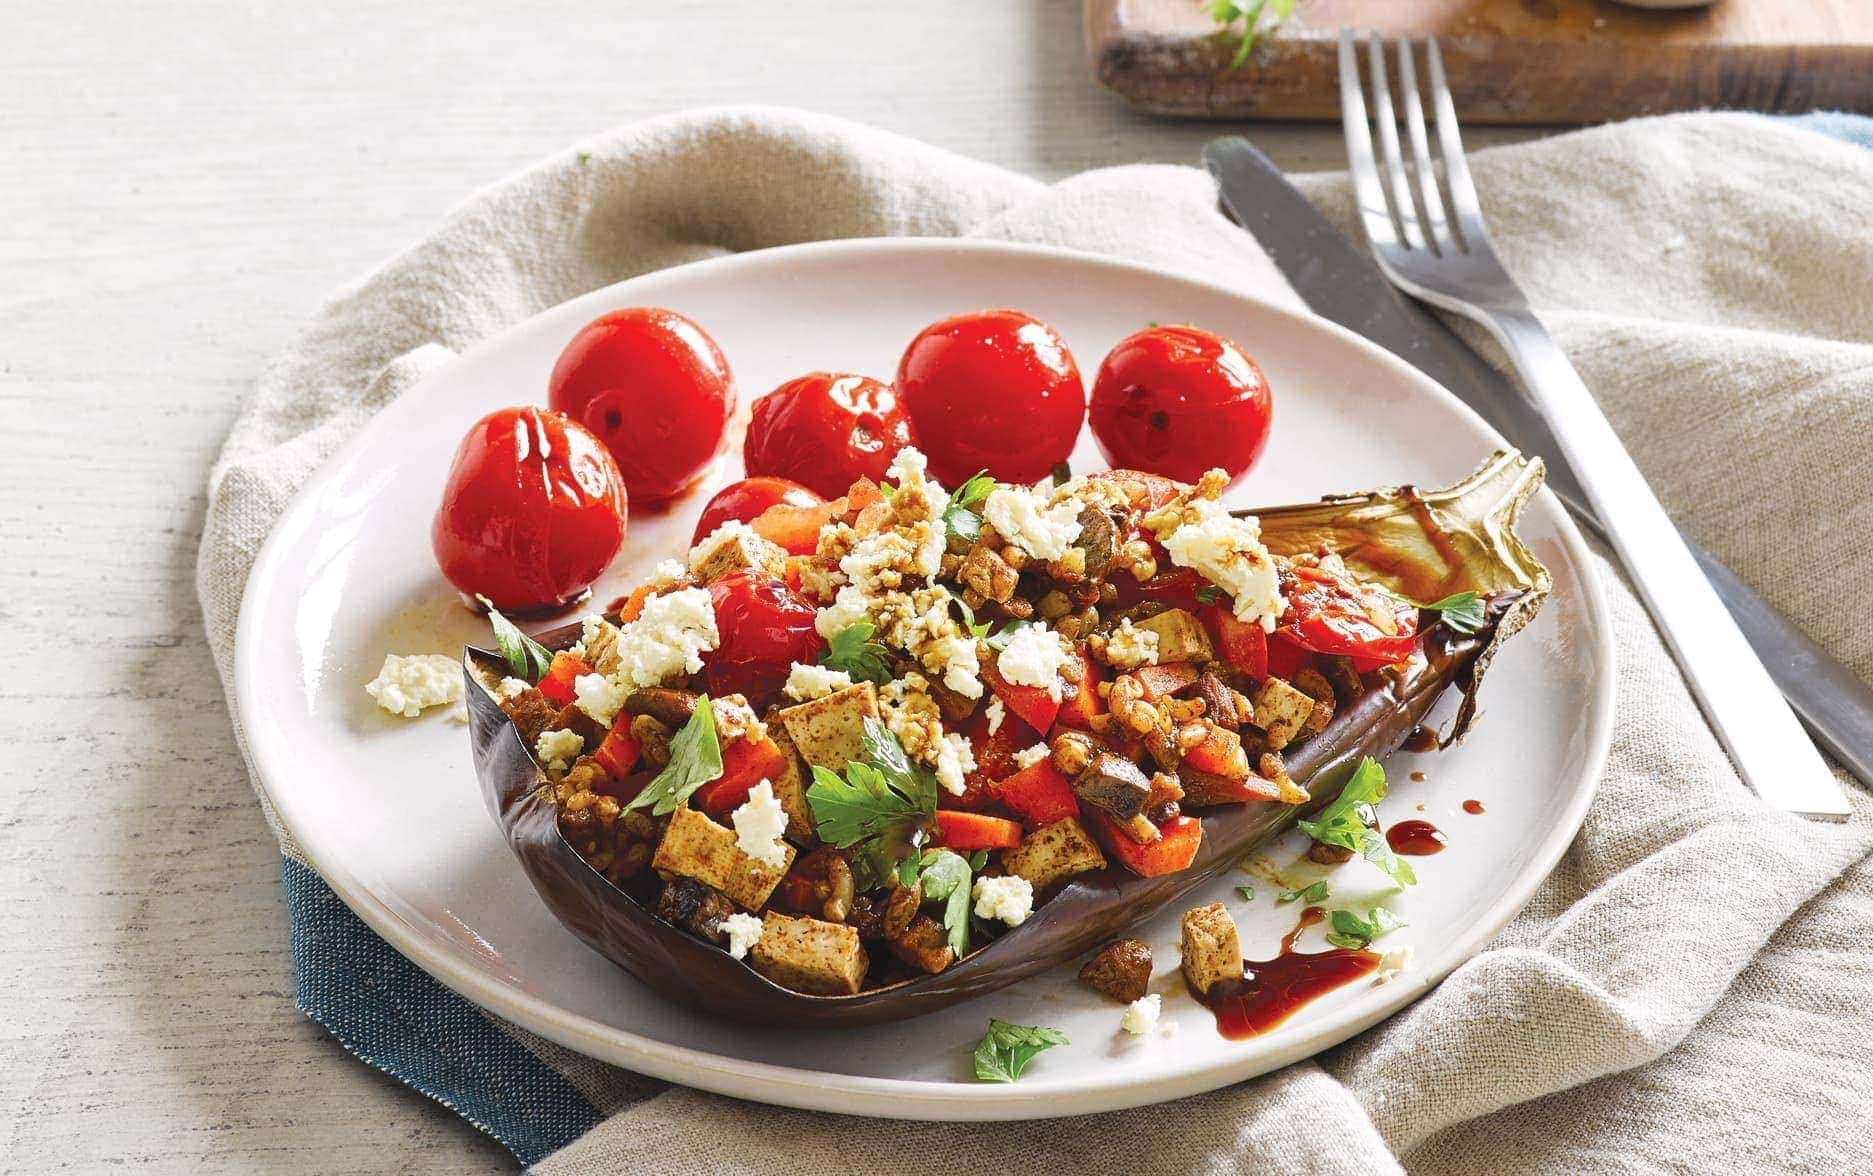 Stuffed eggplant with roasted tomatoes